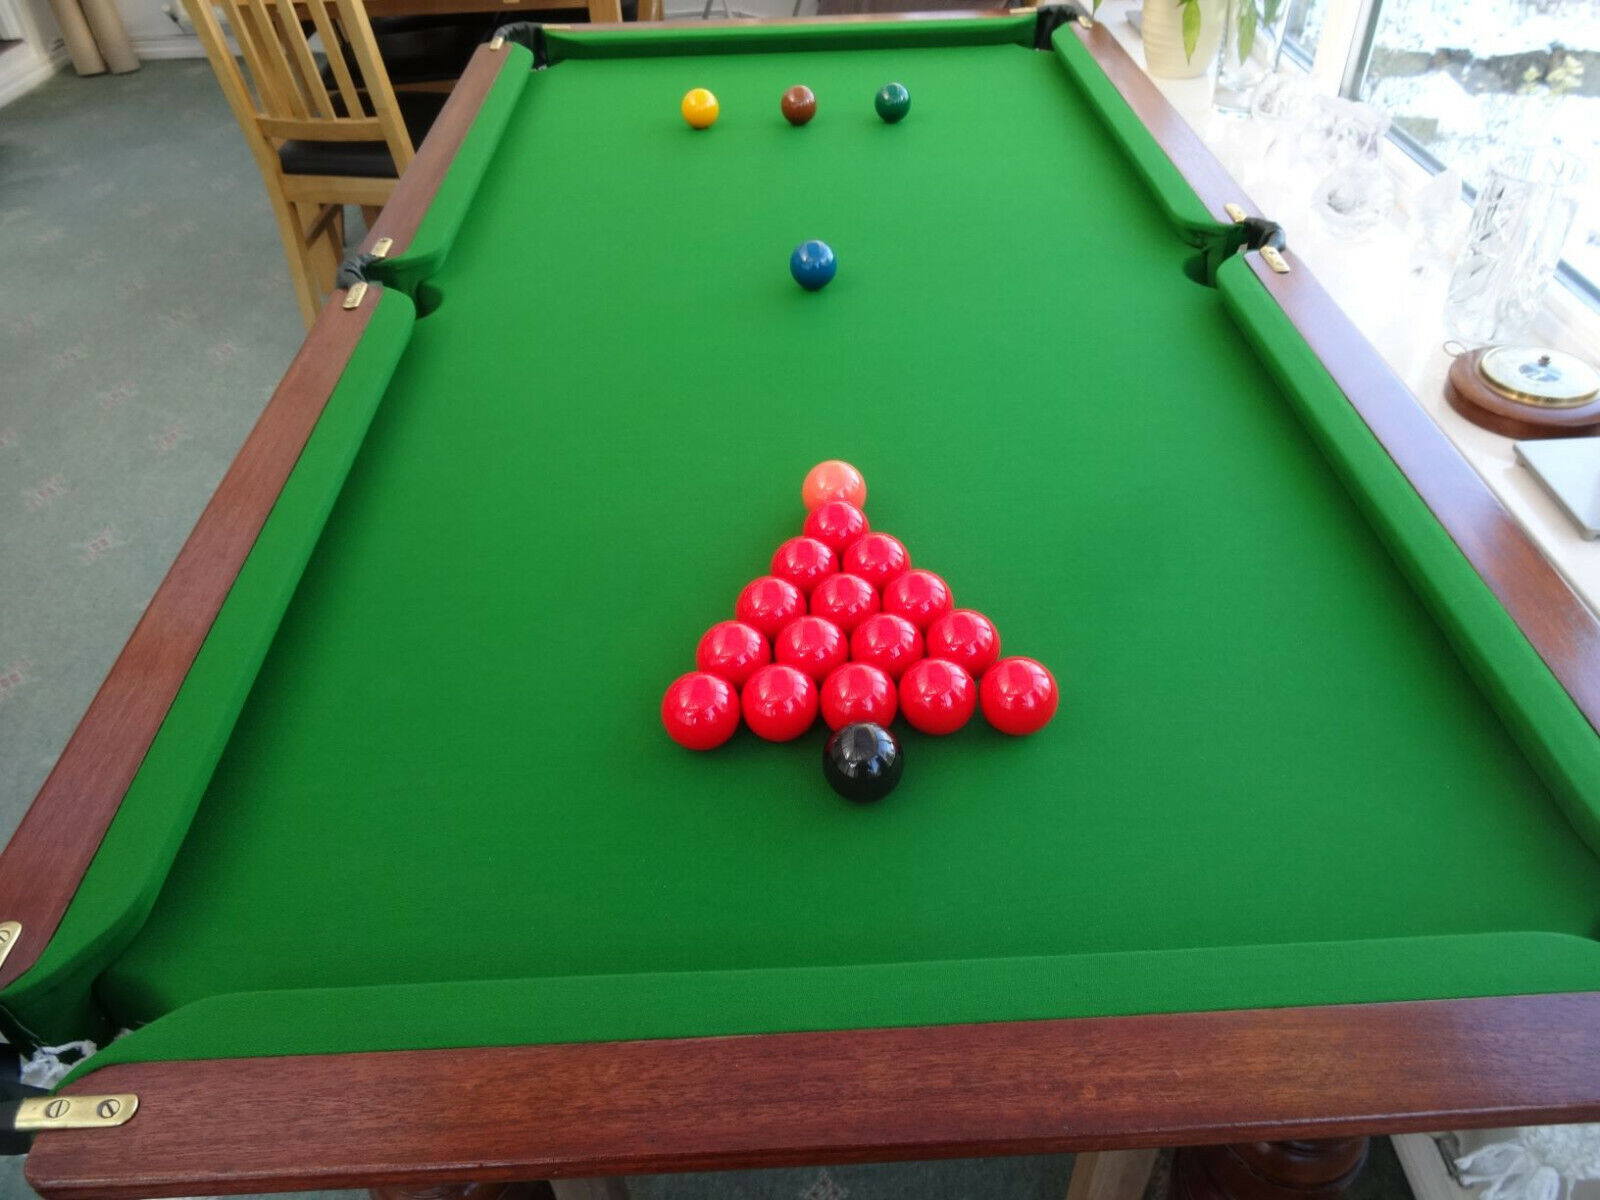 Vintage Slate Bed Snooker Table E A Clare and Son Liverpool, New Hainsworth Cloth